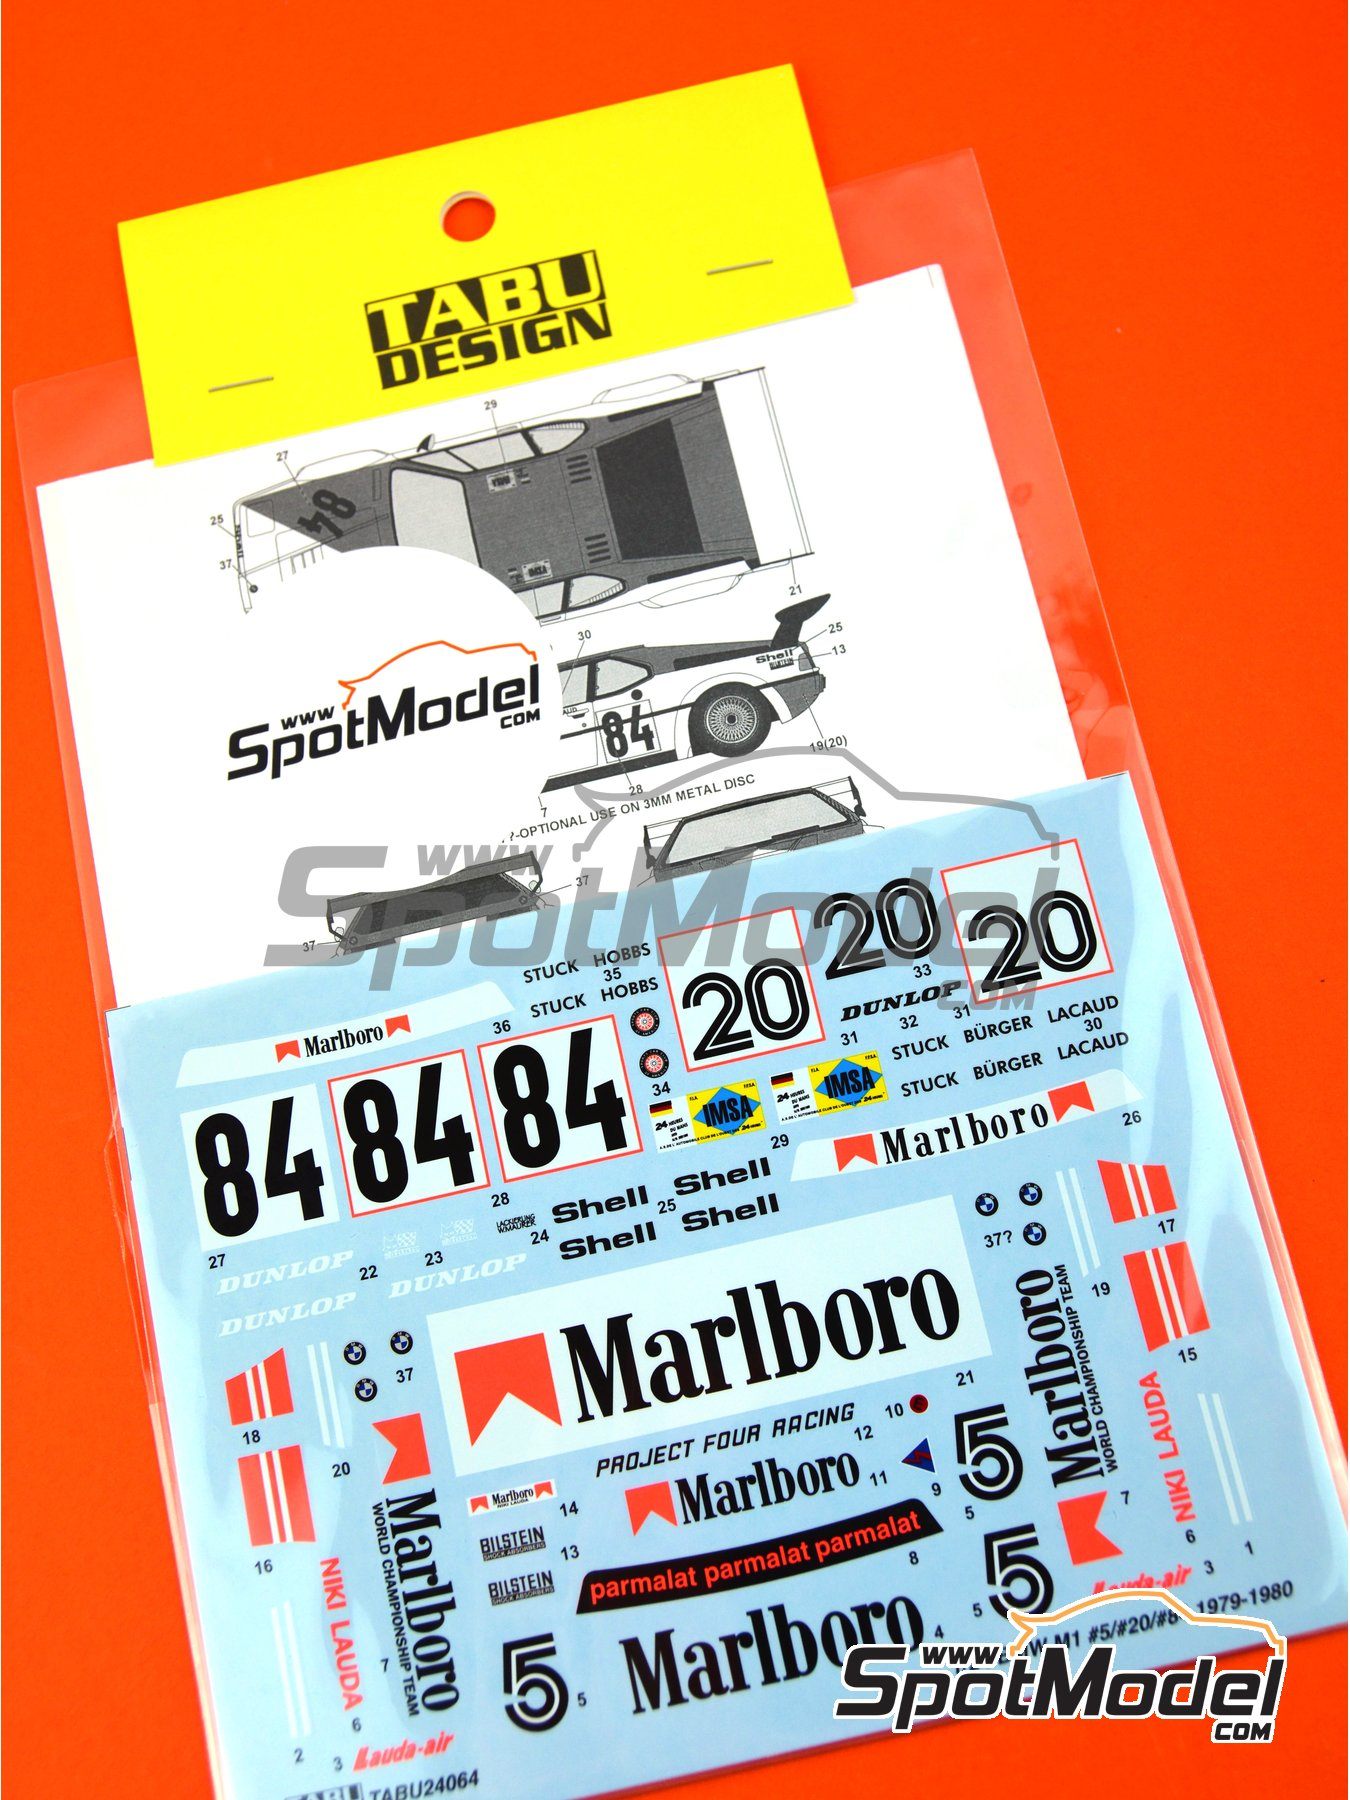 BMW M1 Group A Marlboro - Procar Championship 1979  and 1980 | Marking / livery in 1/24 scale manufactured by Tabu Design (ref.TABU24064) image